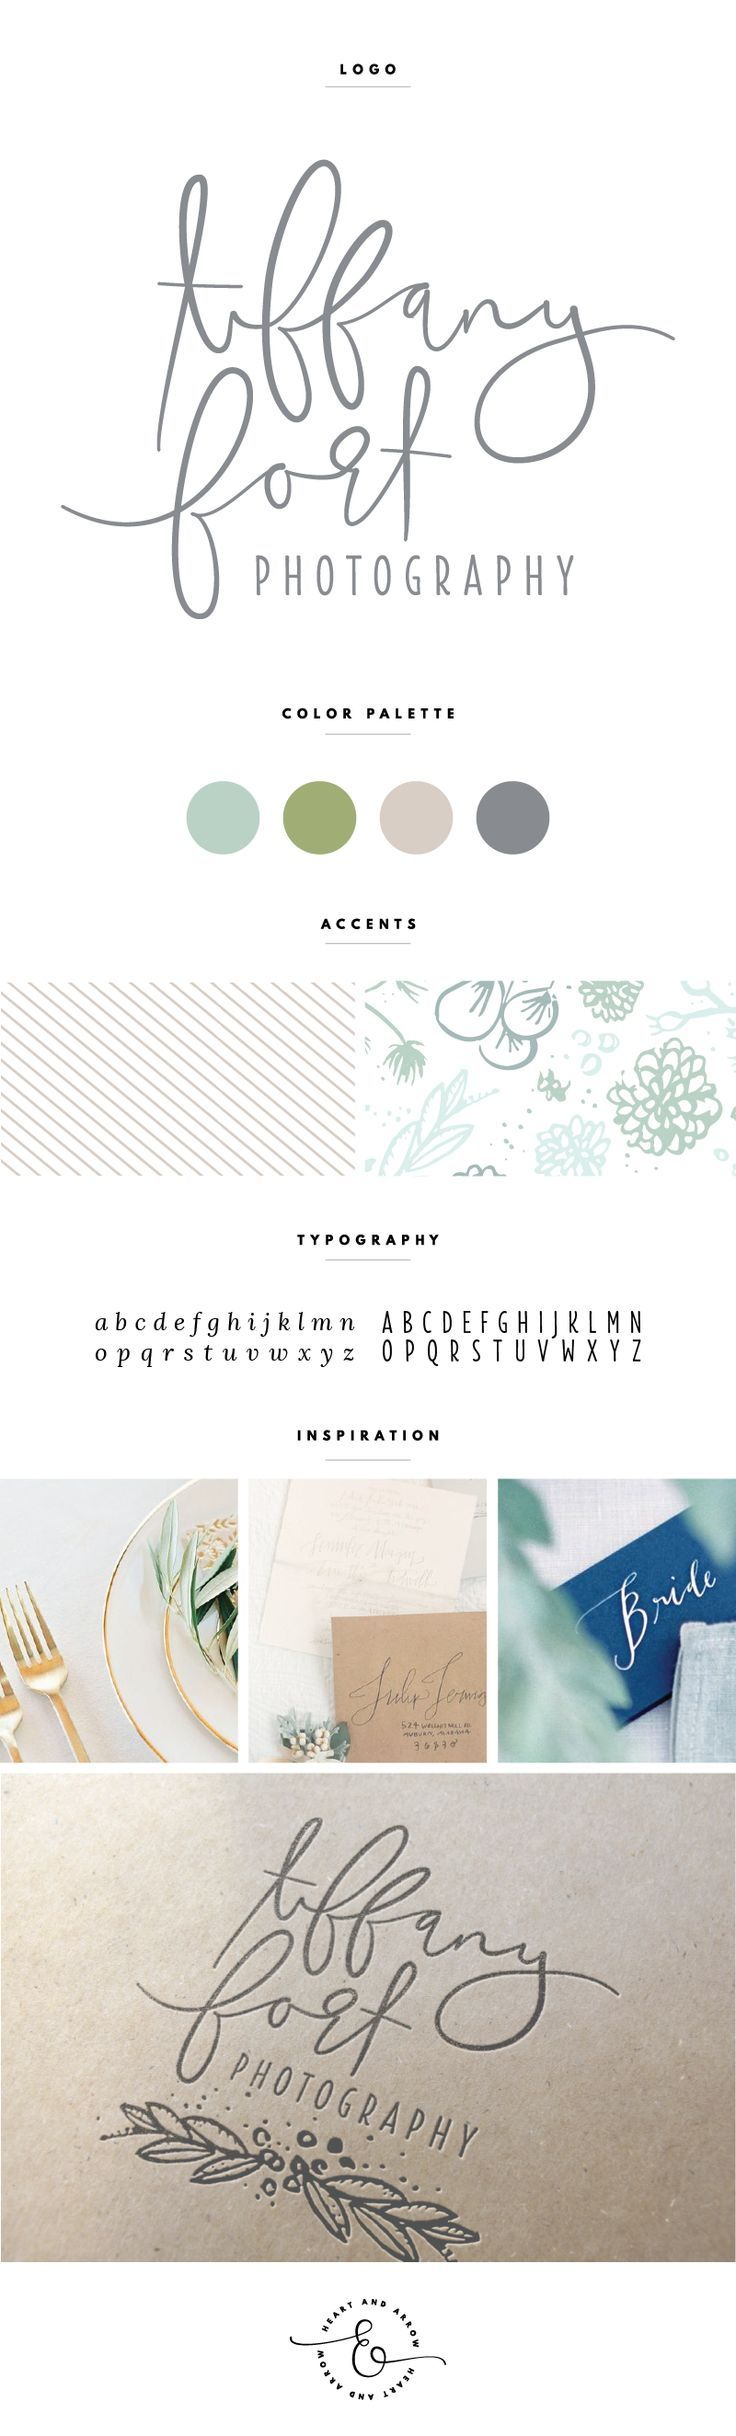 Earthy and organic brand design  |  by Heart & Arrow